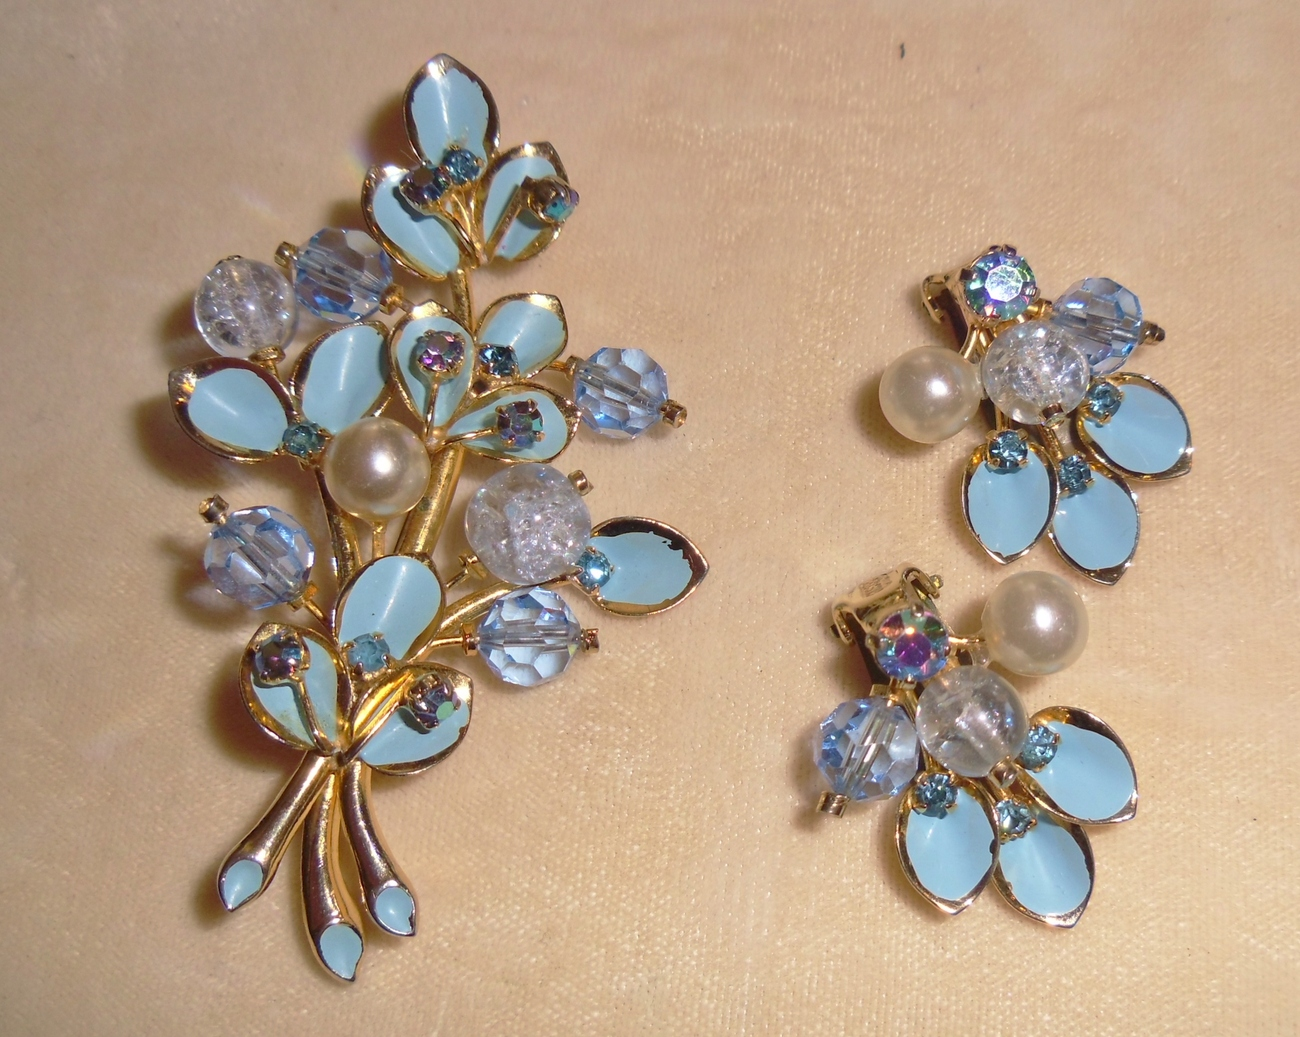 Vintage Kramer Brooch and Earring Set